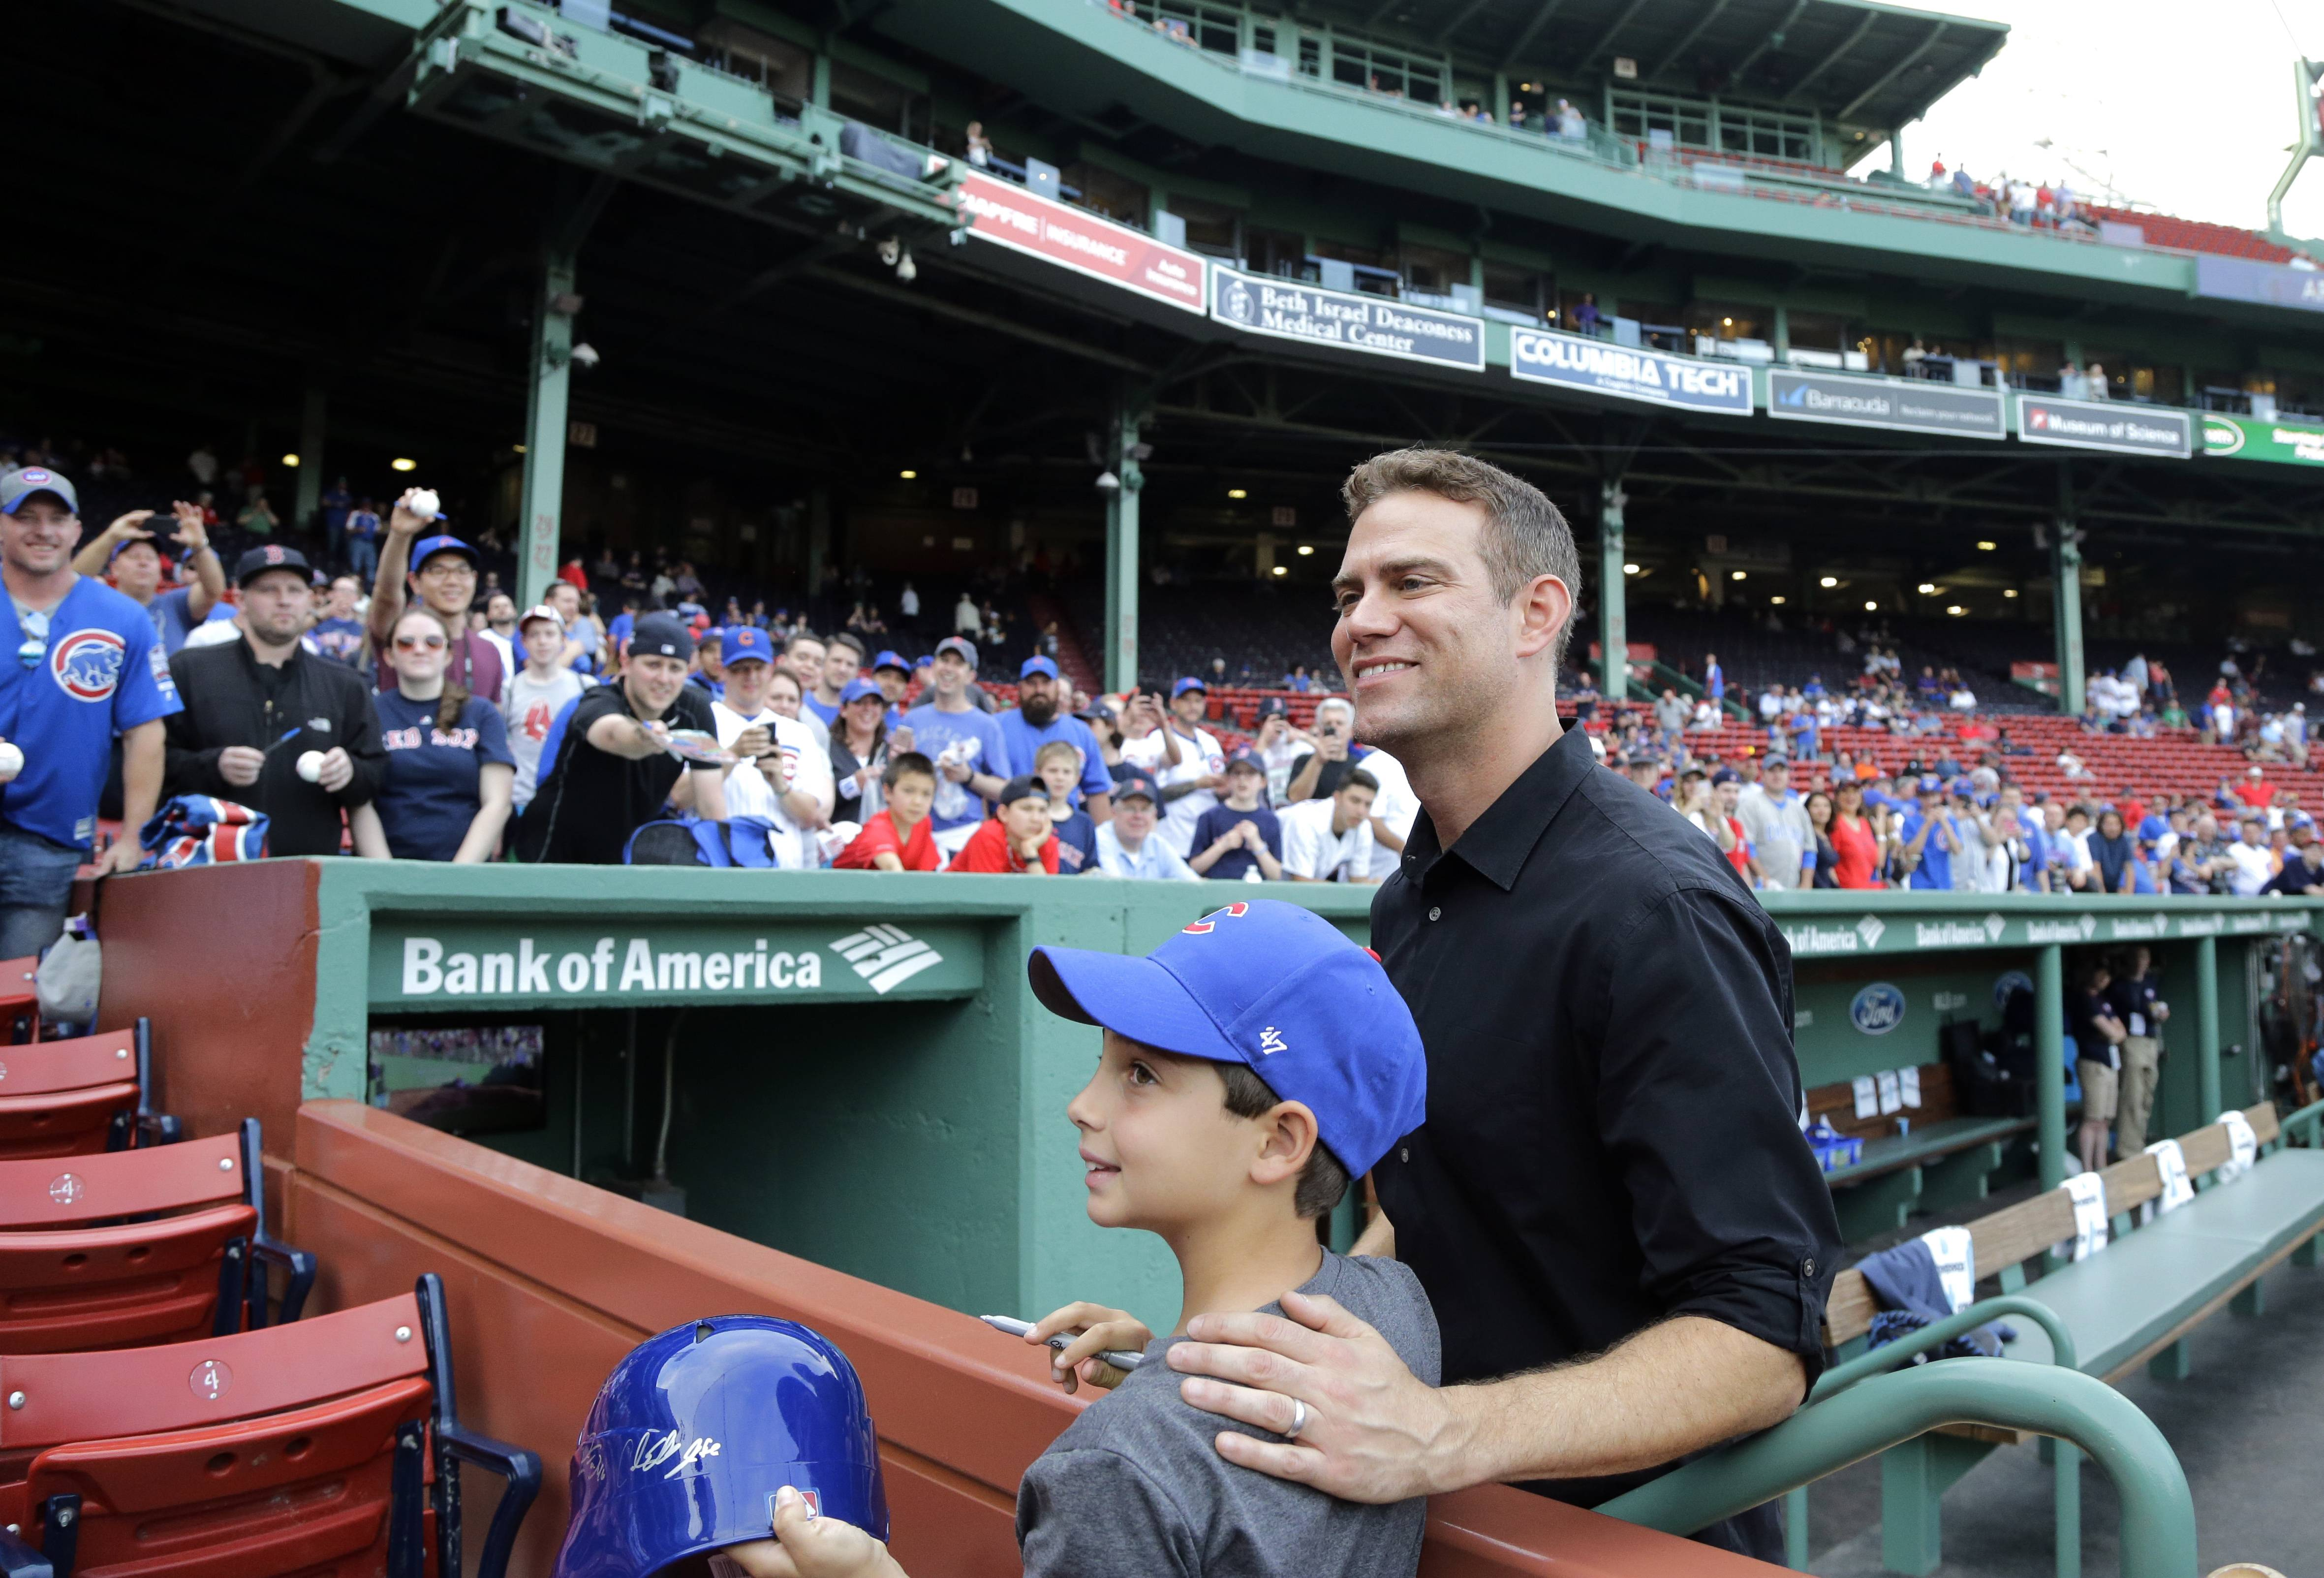 Chicago Cubs president Theo Epstein has been the man of the hour among Cubs fans and Red Sox fans this weekend. Epstein, former GM of the Red Sox, returned to Fenway Friday as a defending world champion with the Cubs